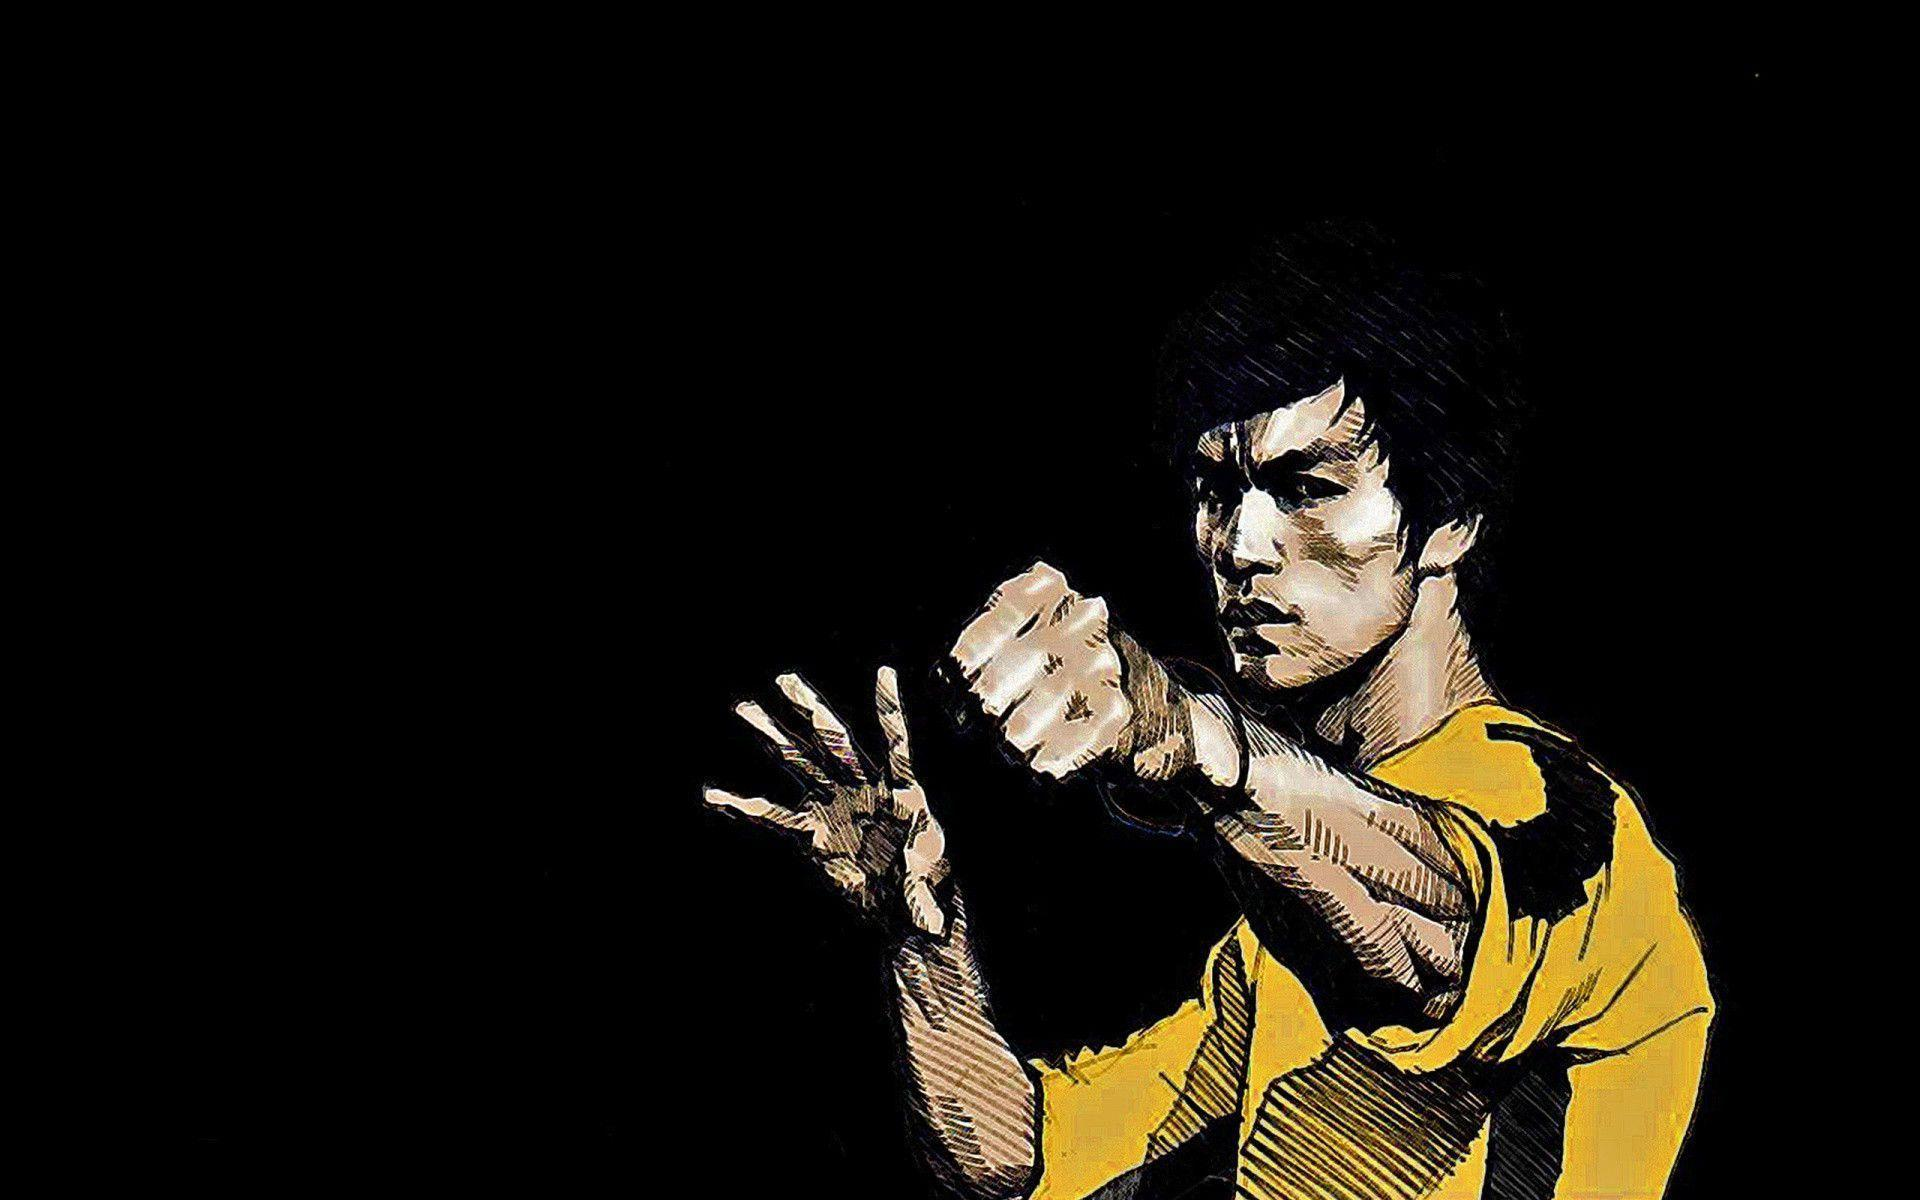 bruce lee wallpaper  Bruce Lee Wallpapers - Wallpaper Cave